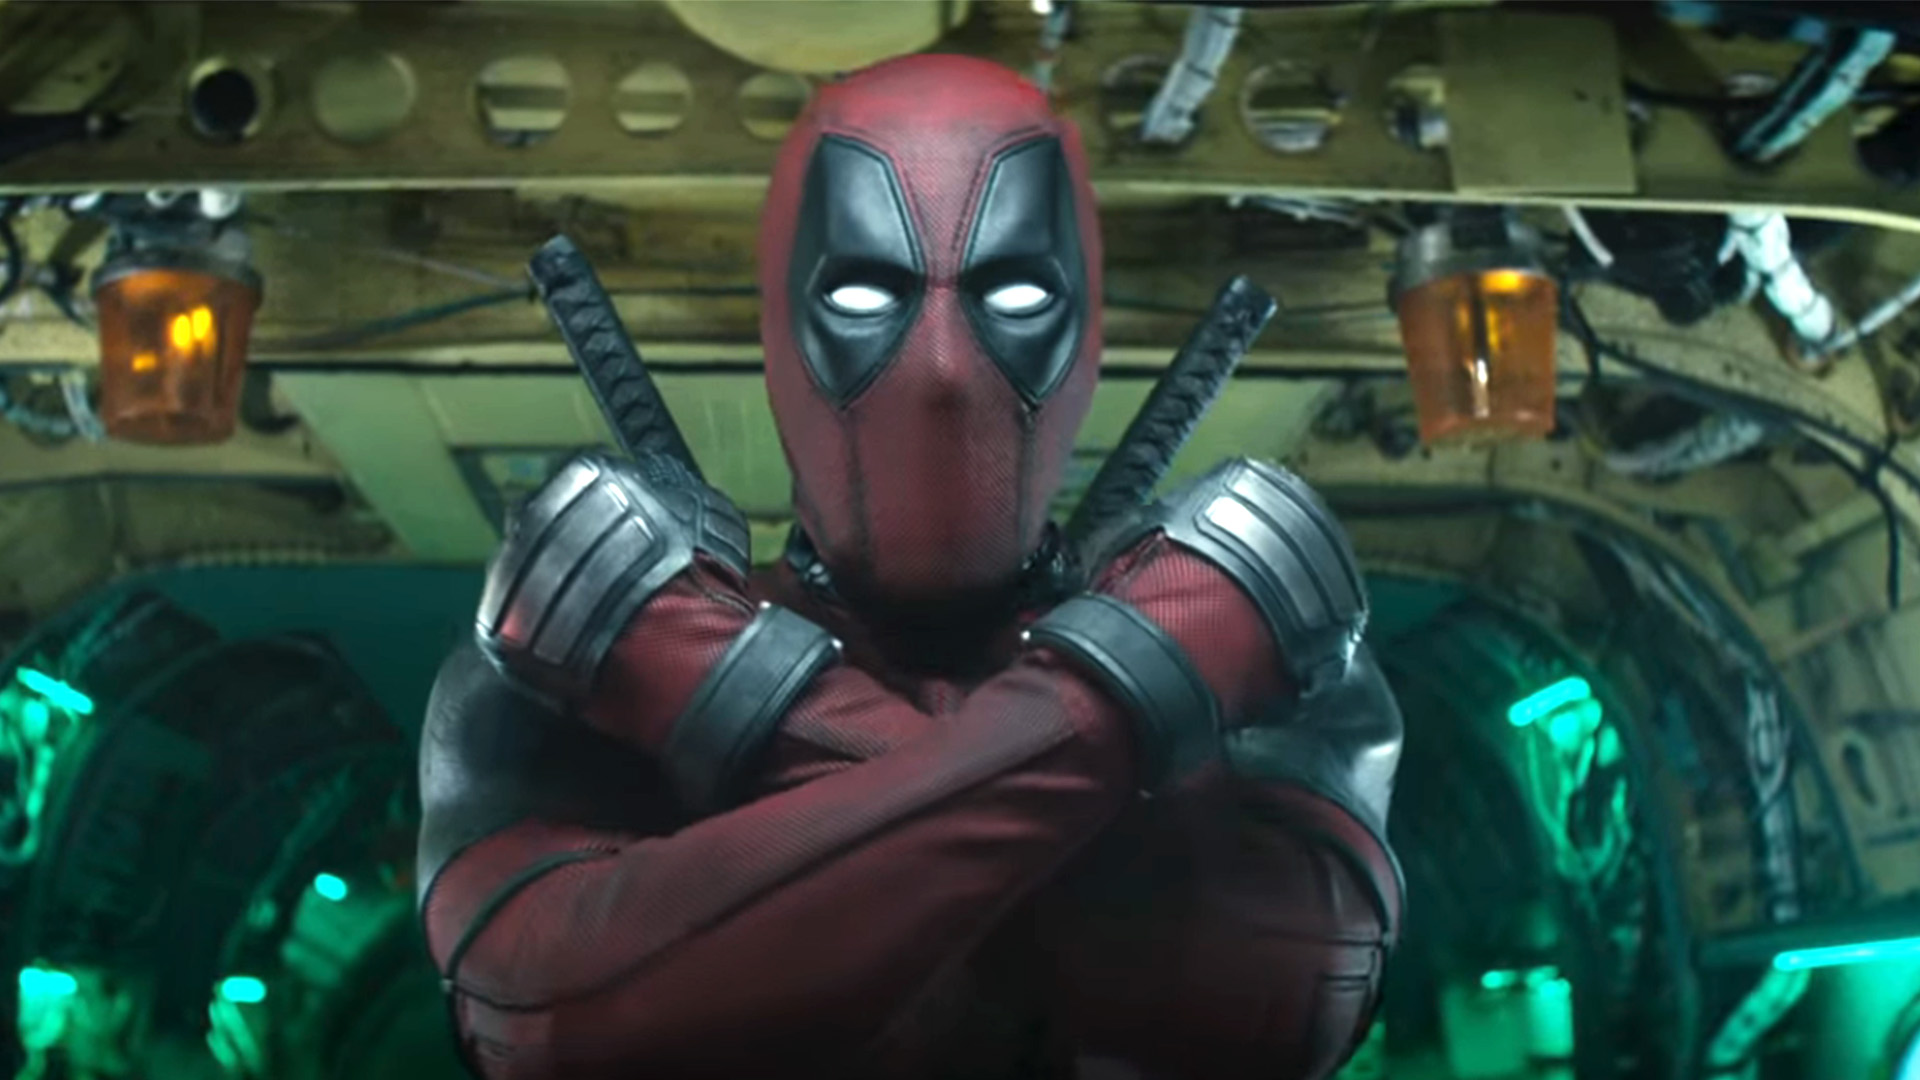 New International Teaser Arrives For Deadpool 2